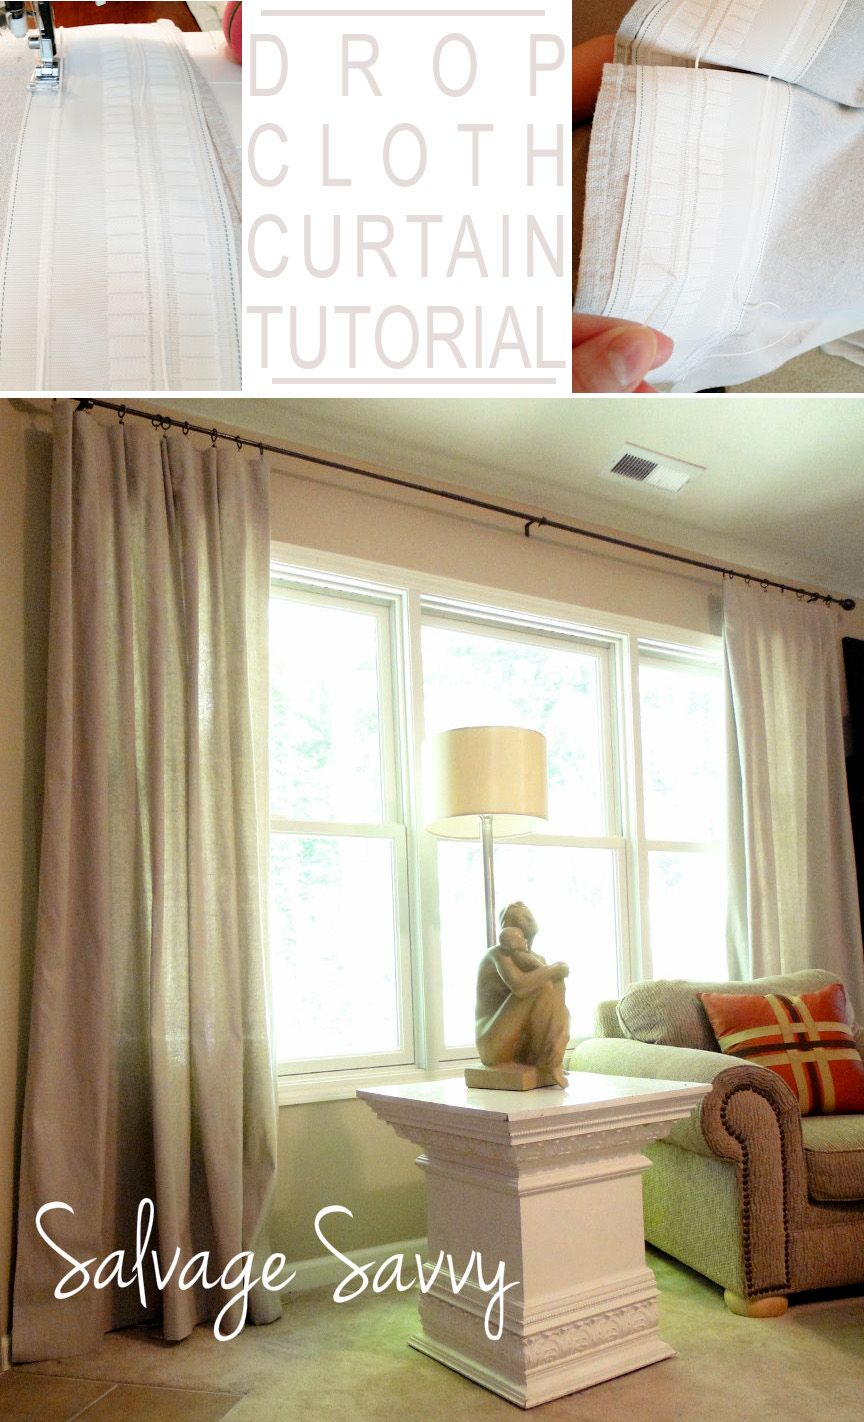 Cheap window coverings  drop cloth curtains tutoriali am doing this in several rooms ium